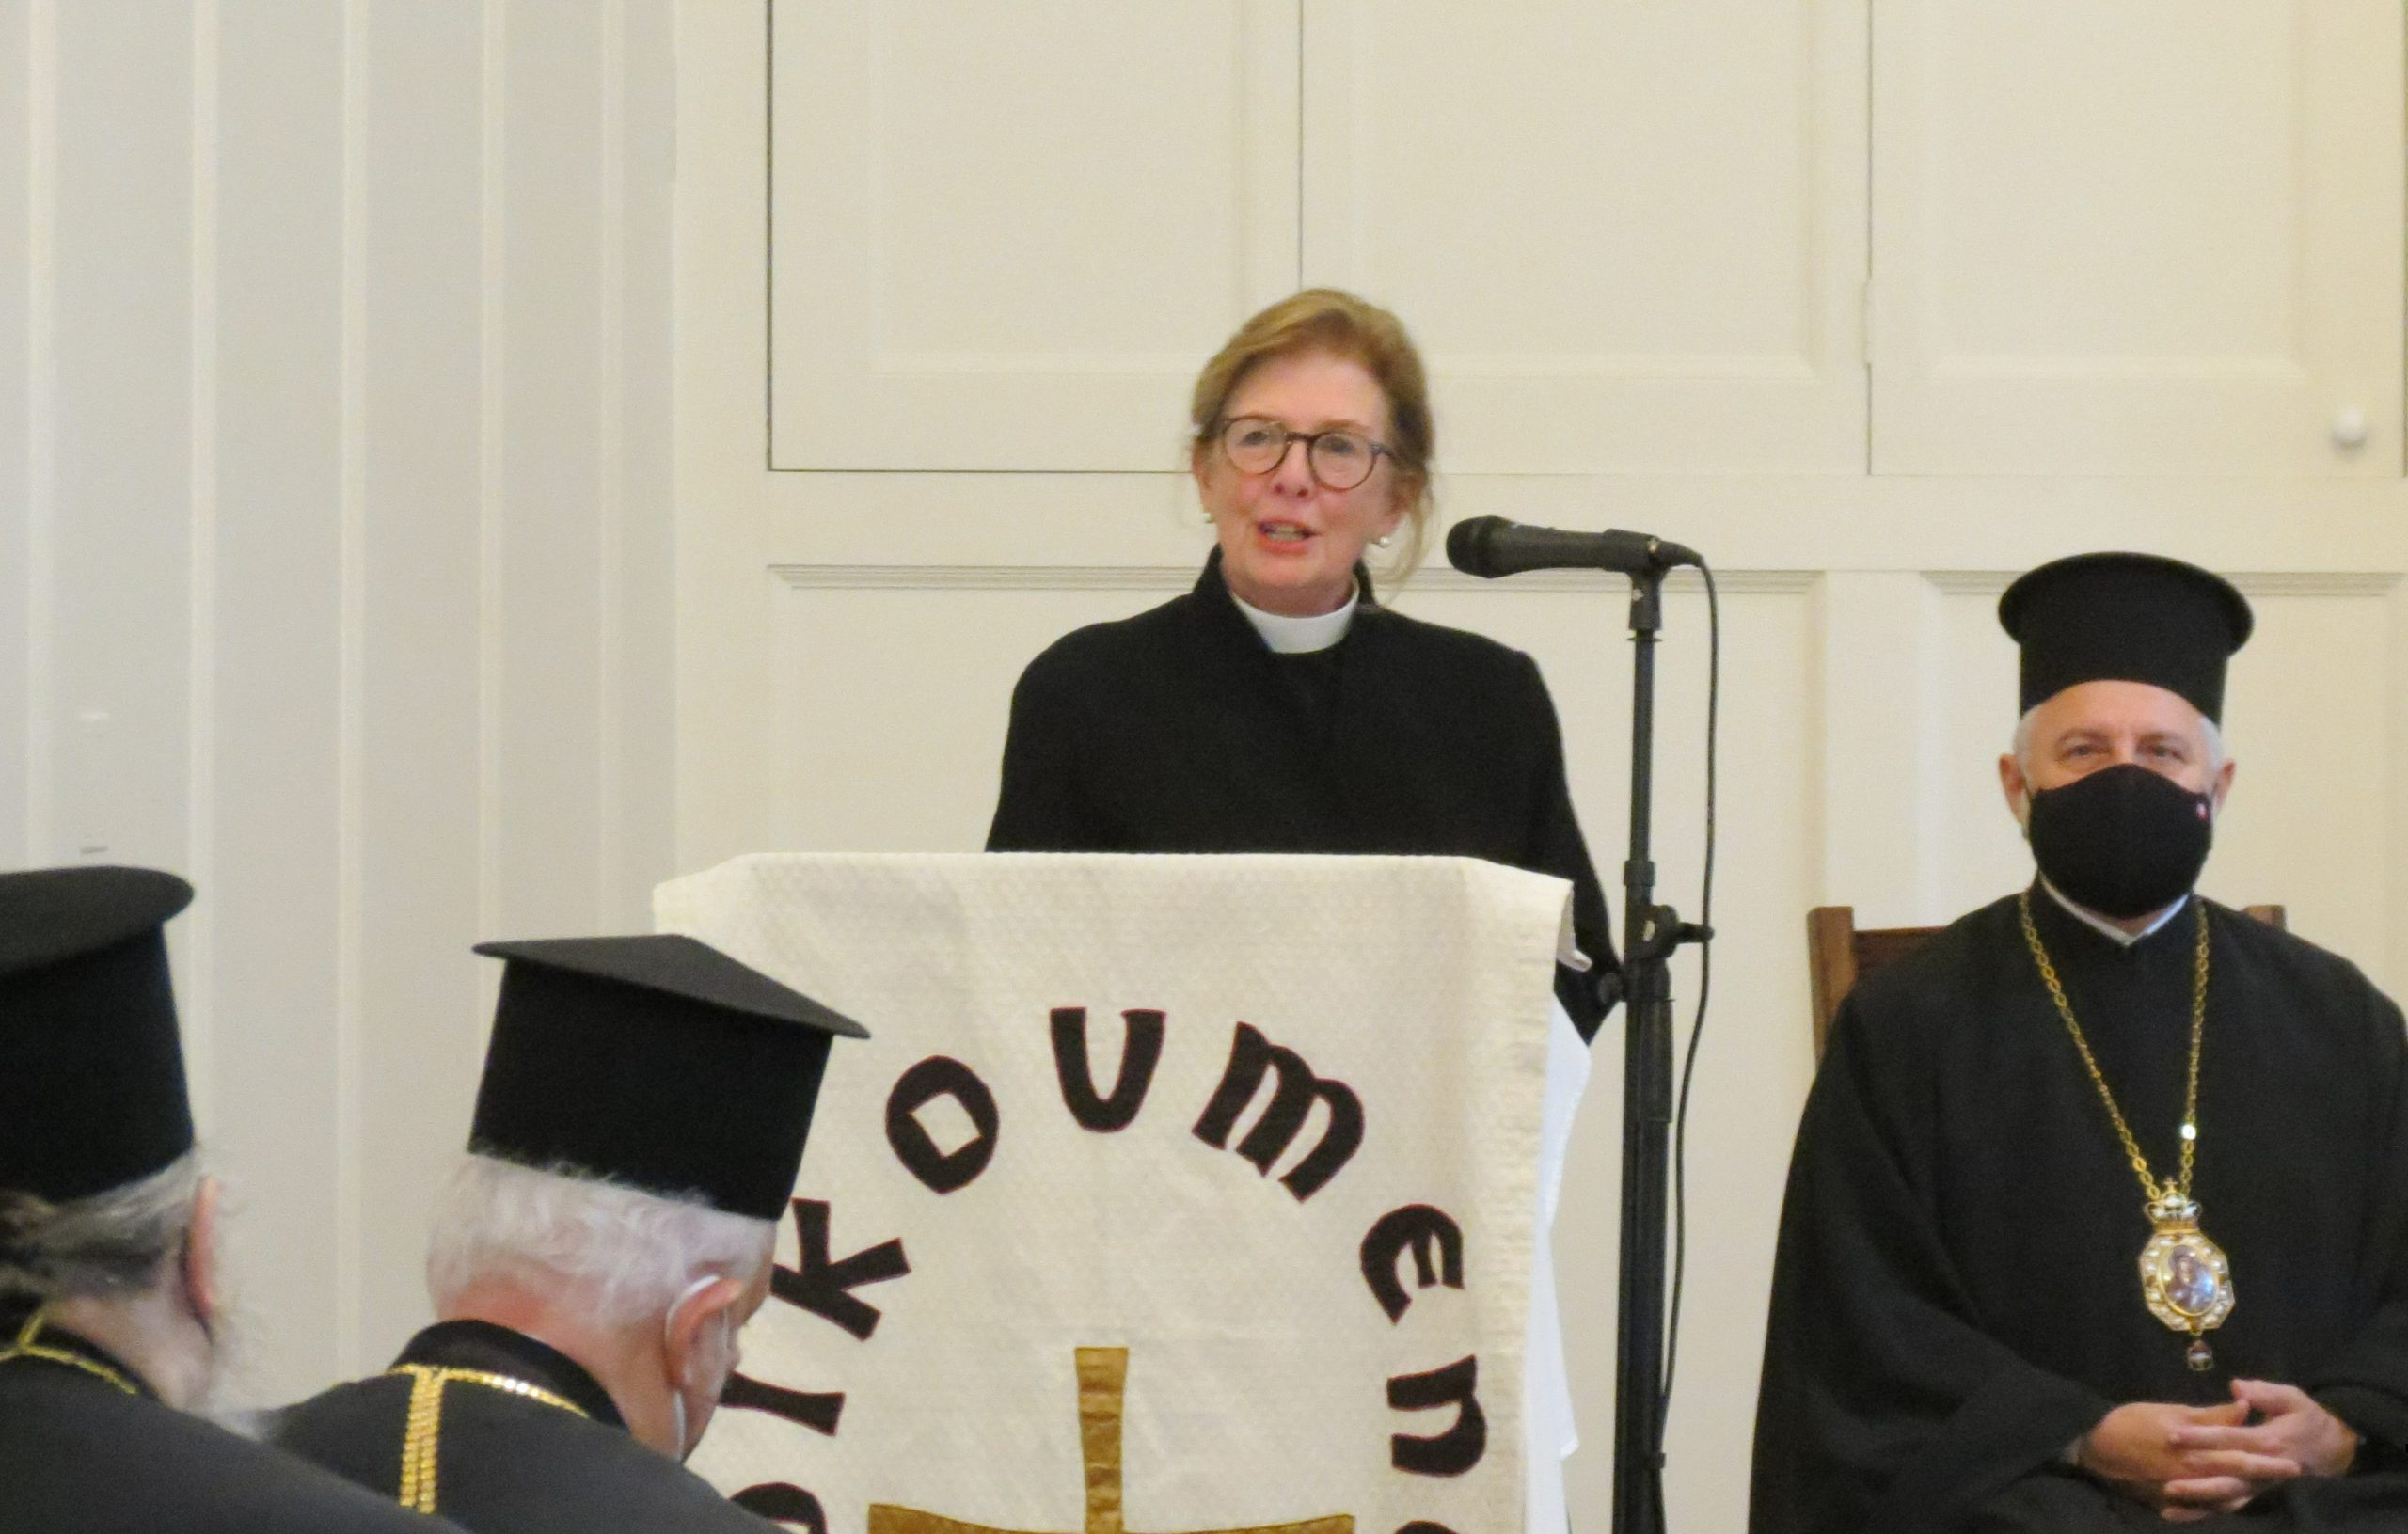 Rev. Susan Henry Crowe, General Secretary of the United Methodist Board of Church and Society